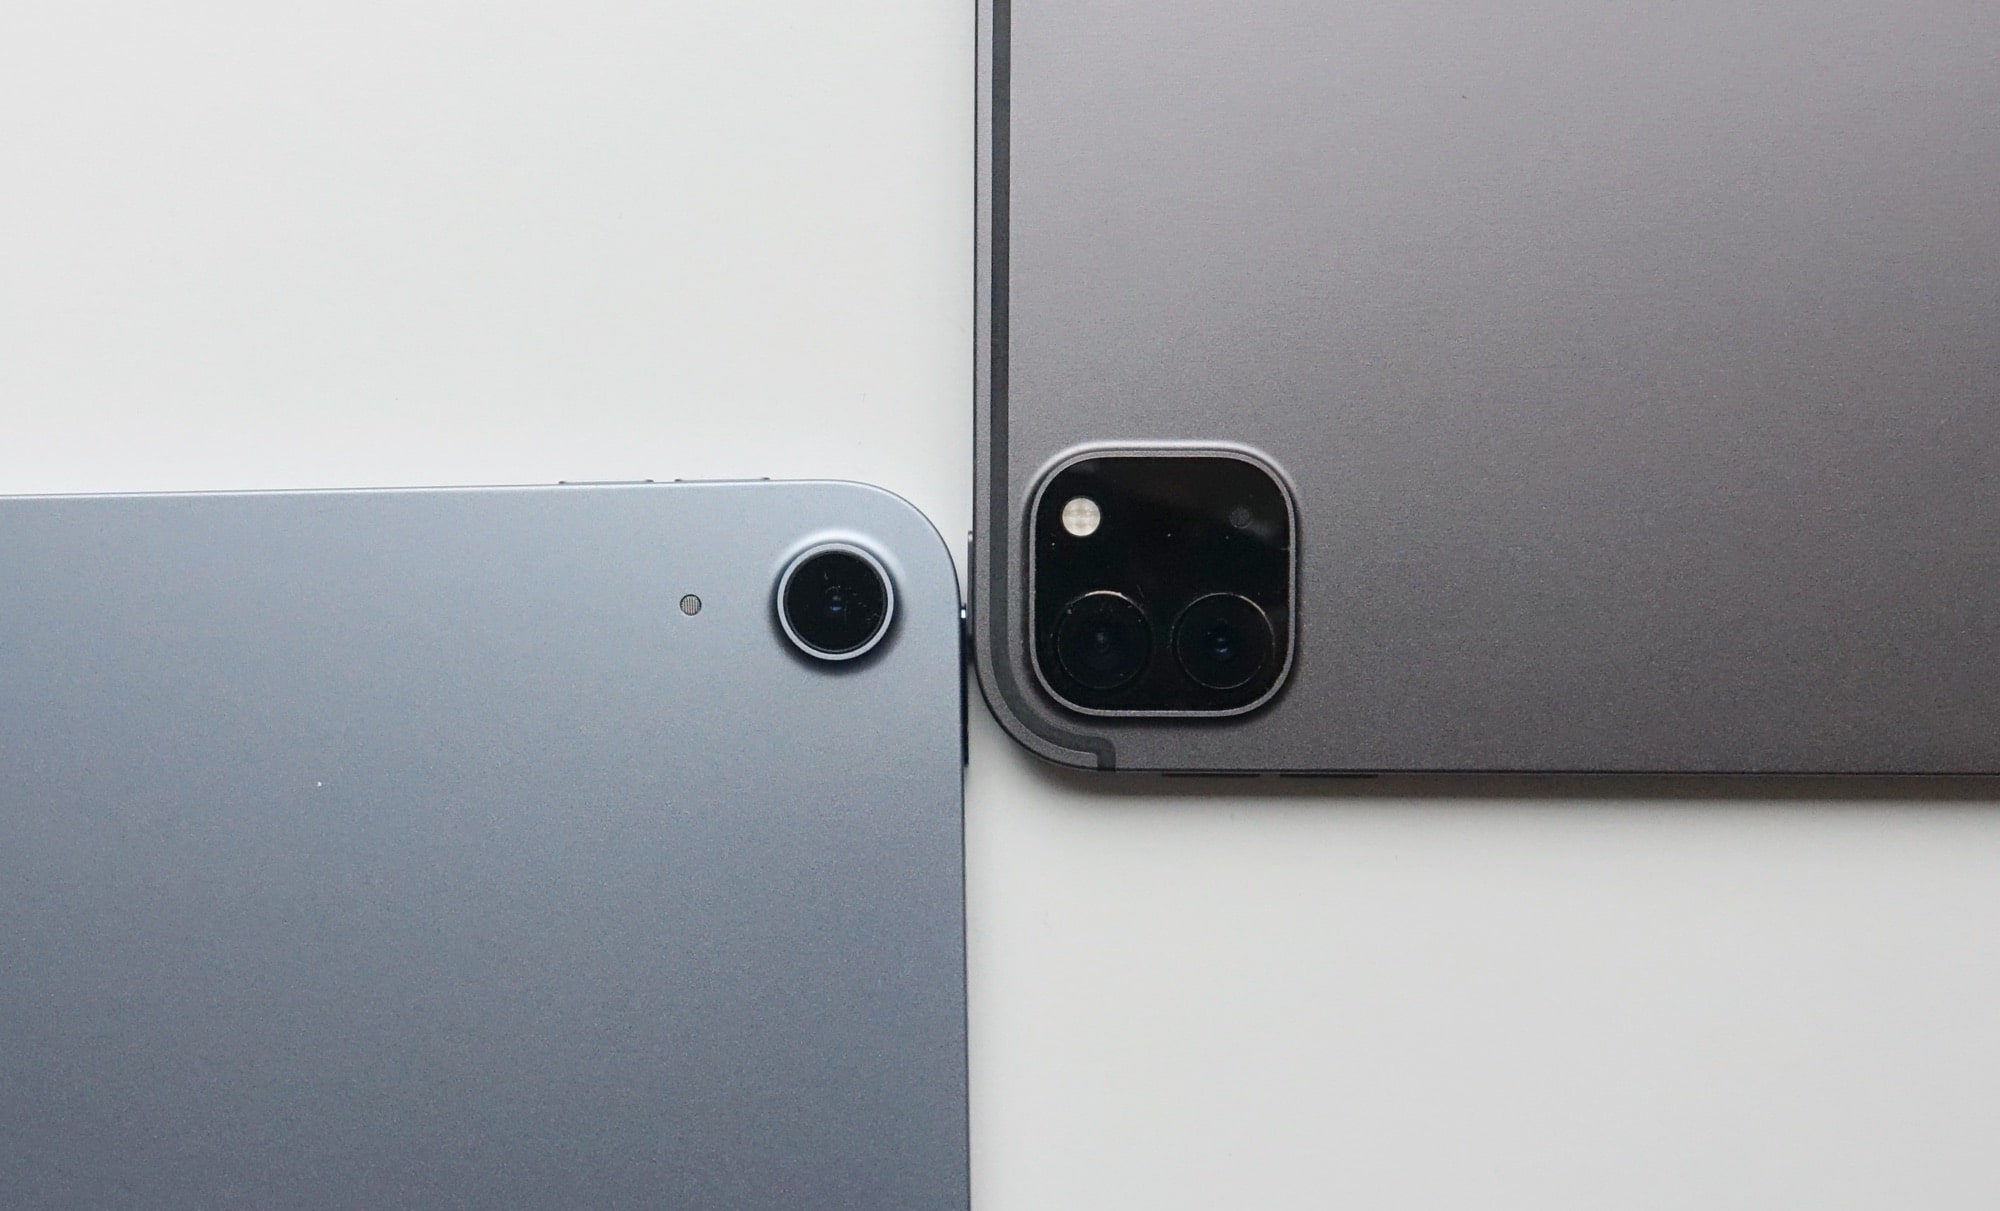 Camera differences in the iPad Air (left) and iPad Pro (right)